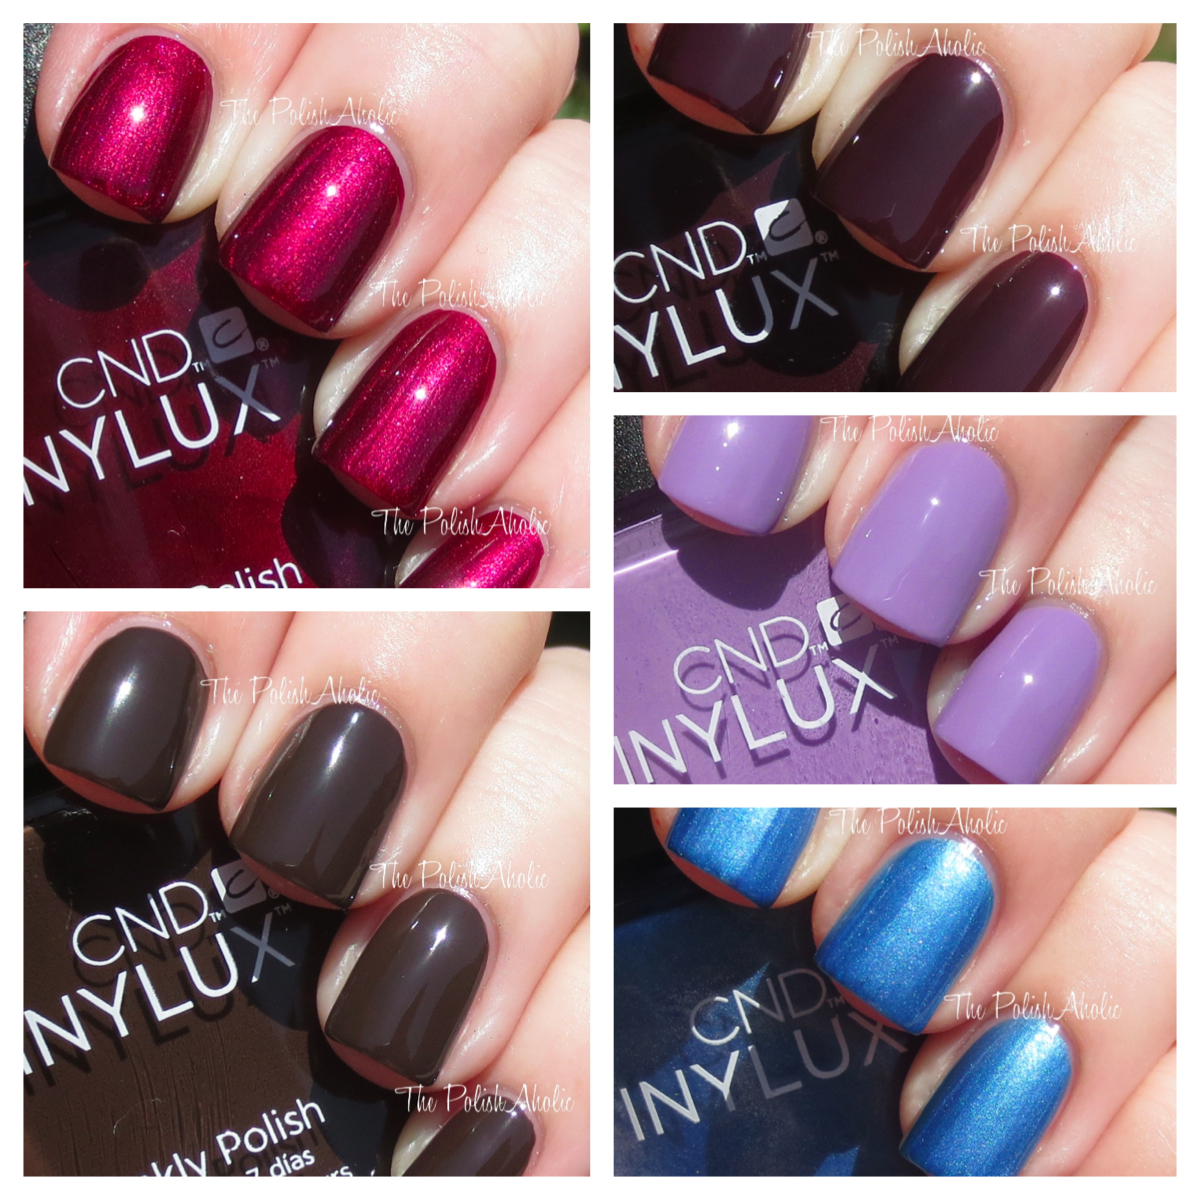 The PolishAholic: CND Vinylux Swatches & Review